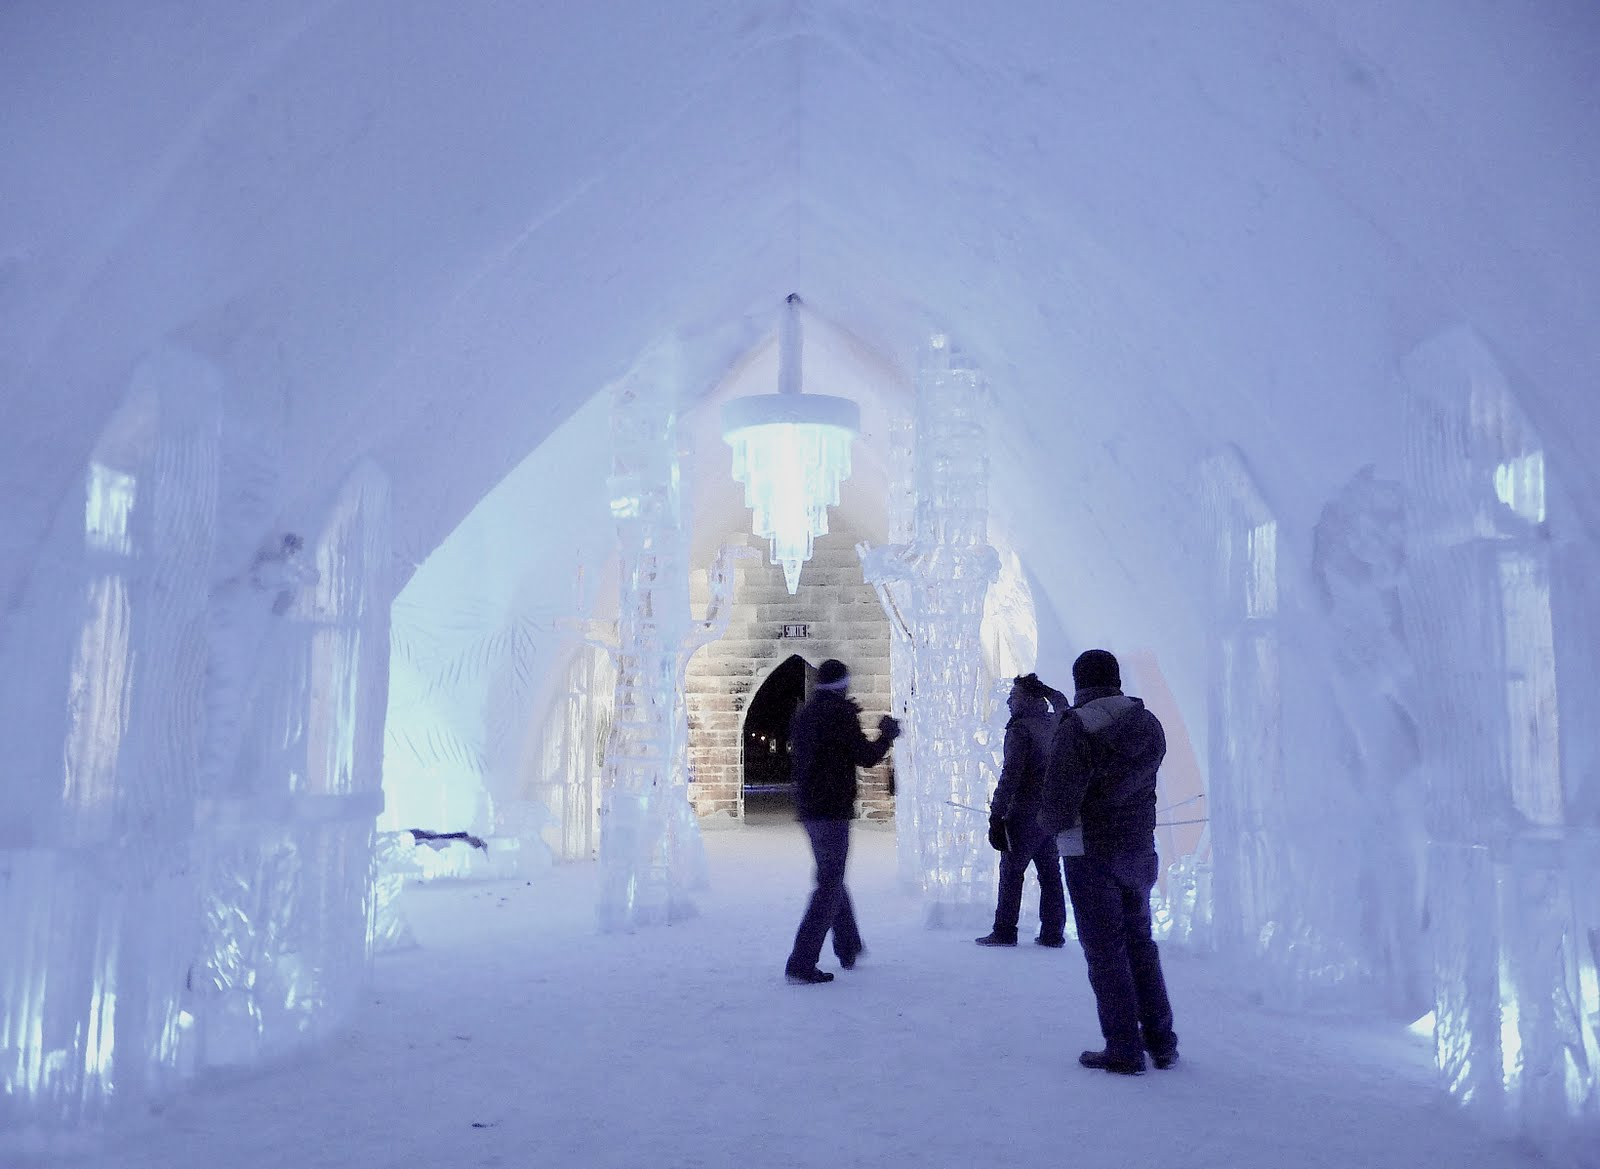 Ice Hotel Holiday, Quebec, Canada, Hotel de Glace overview on ice hotels in usa, montreal quebec canada, travel quebec canada, plains of abraham quebec canada, christmas in quebec canada, map of quebec canada, ice hotel quebec winter carnival, northern lights quebec canada, winter quebec canada, ice village canada, fishing quebec canada, tourist attractions in winnipeg canada, province of quebec canada, luxury hotels in quebec canada, quebec quebec canada, banff springs hotel alberta canada, ice hotel in quebec, quebec city canada, gaspe peninsula quebec canada, ice hotel quebec 2014,